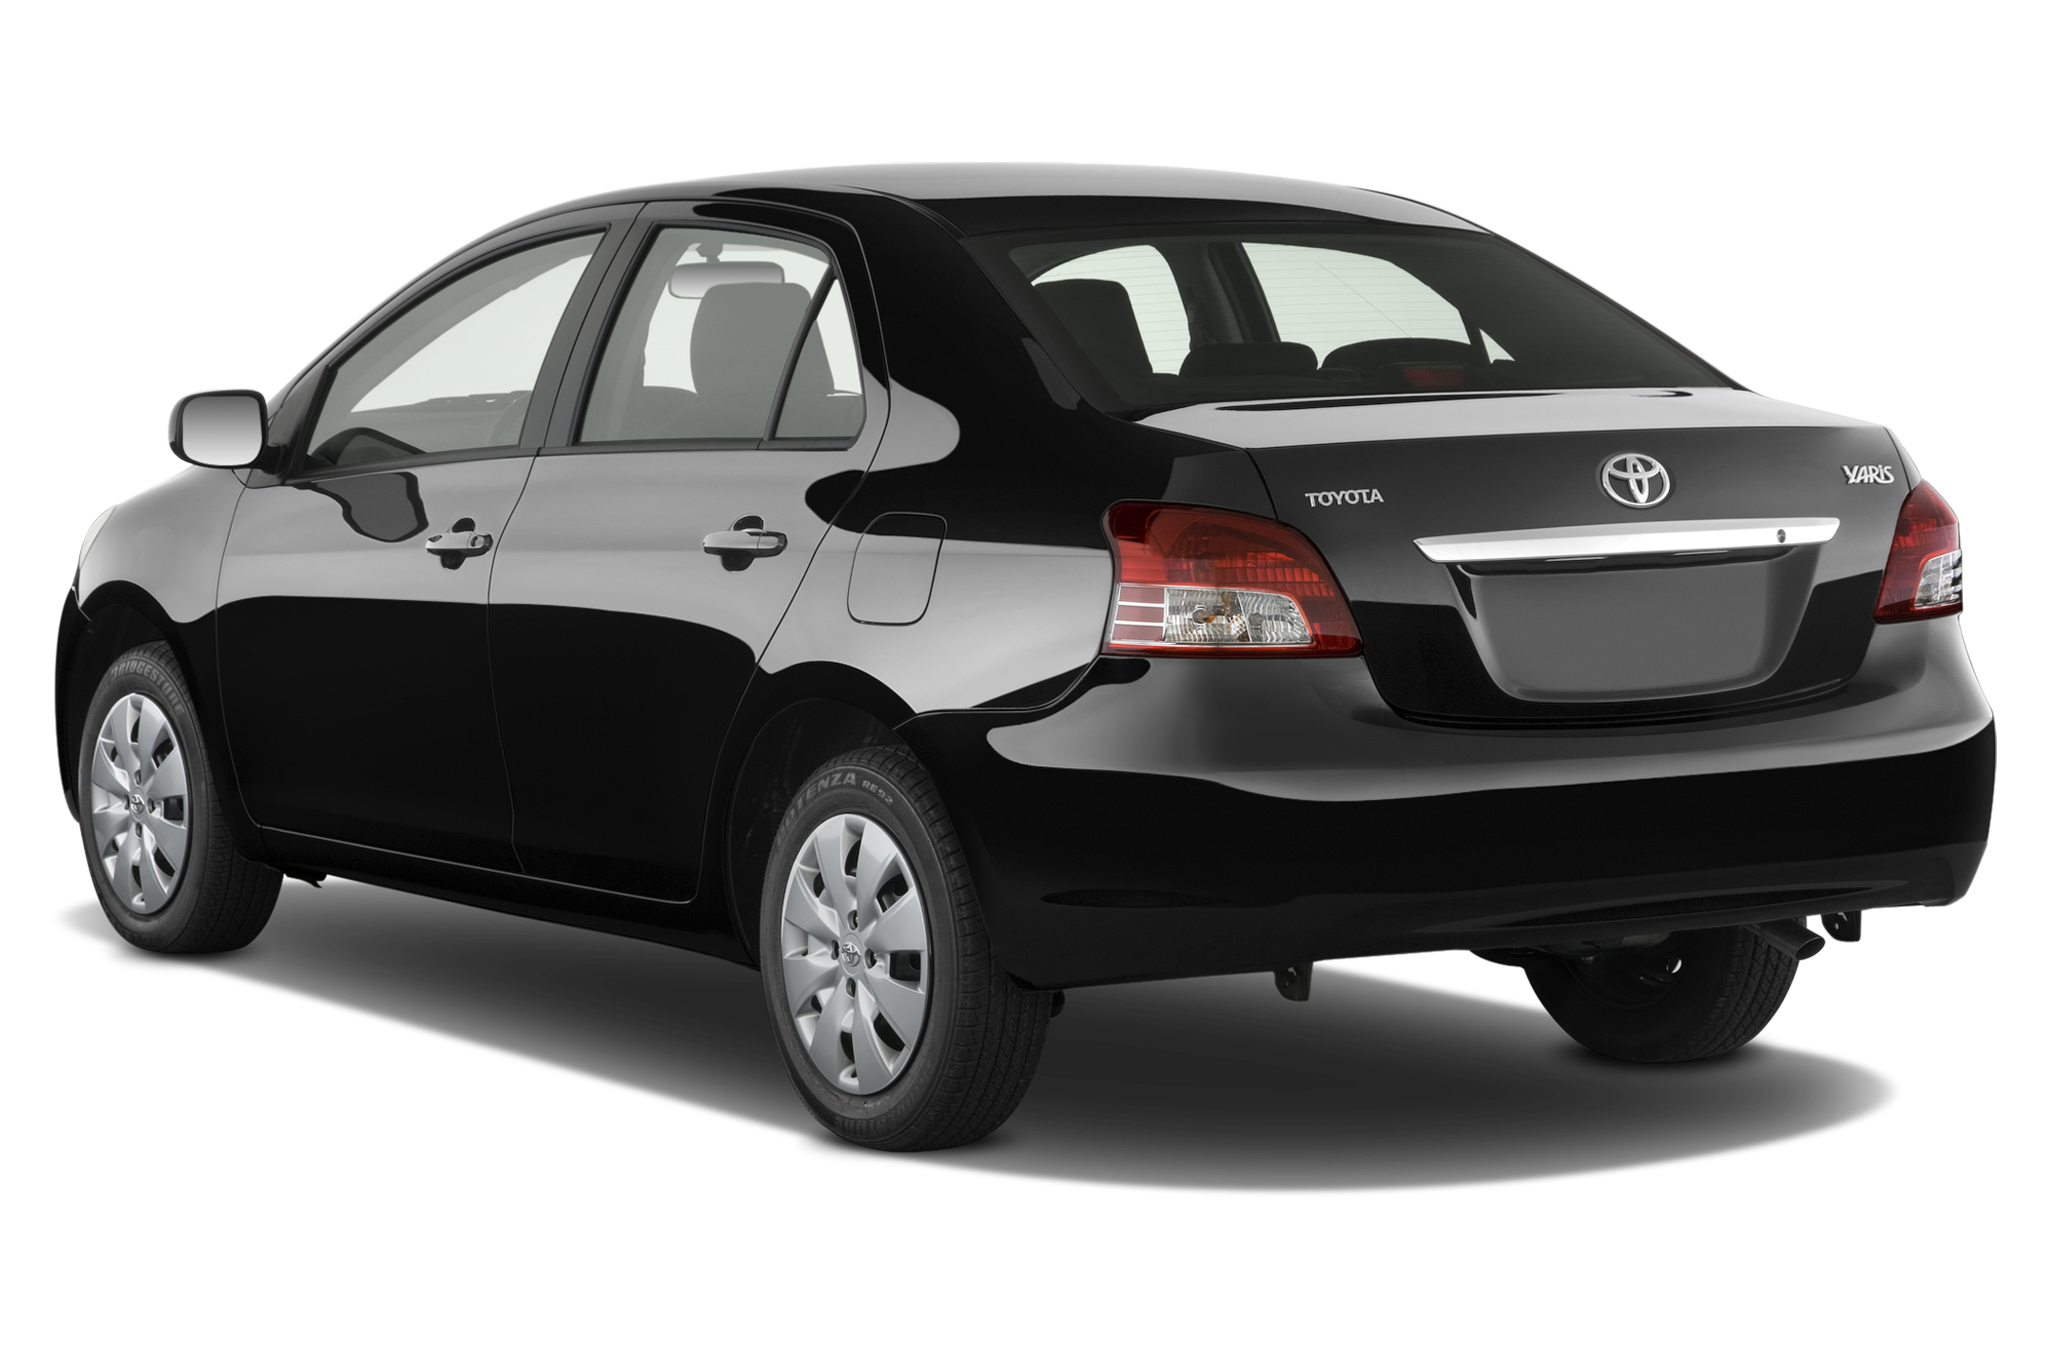 2012 toyota yaris price rises 930 to 14 875 sienna sequoia tundra prices up. Black Bedroom Furniture Sets. Home Design Ideas